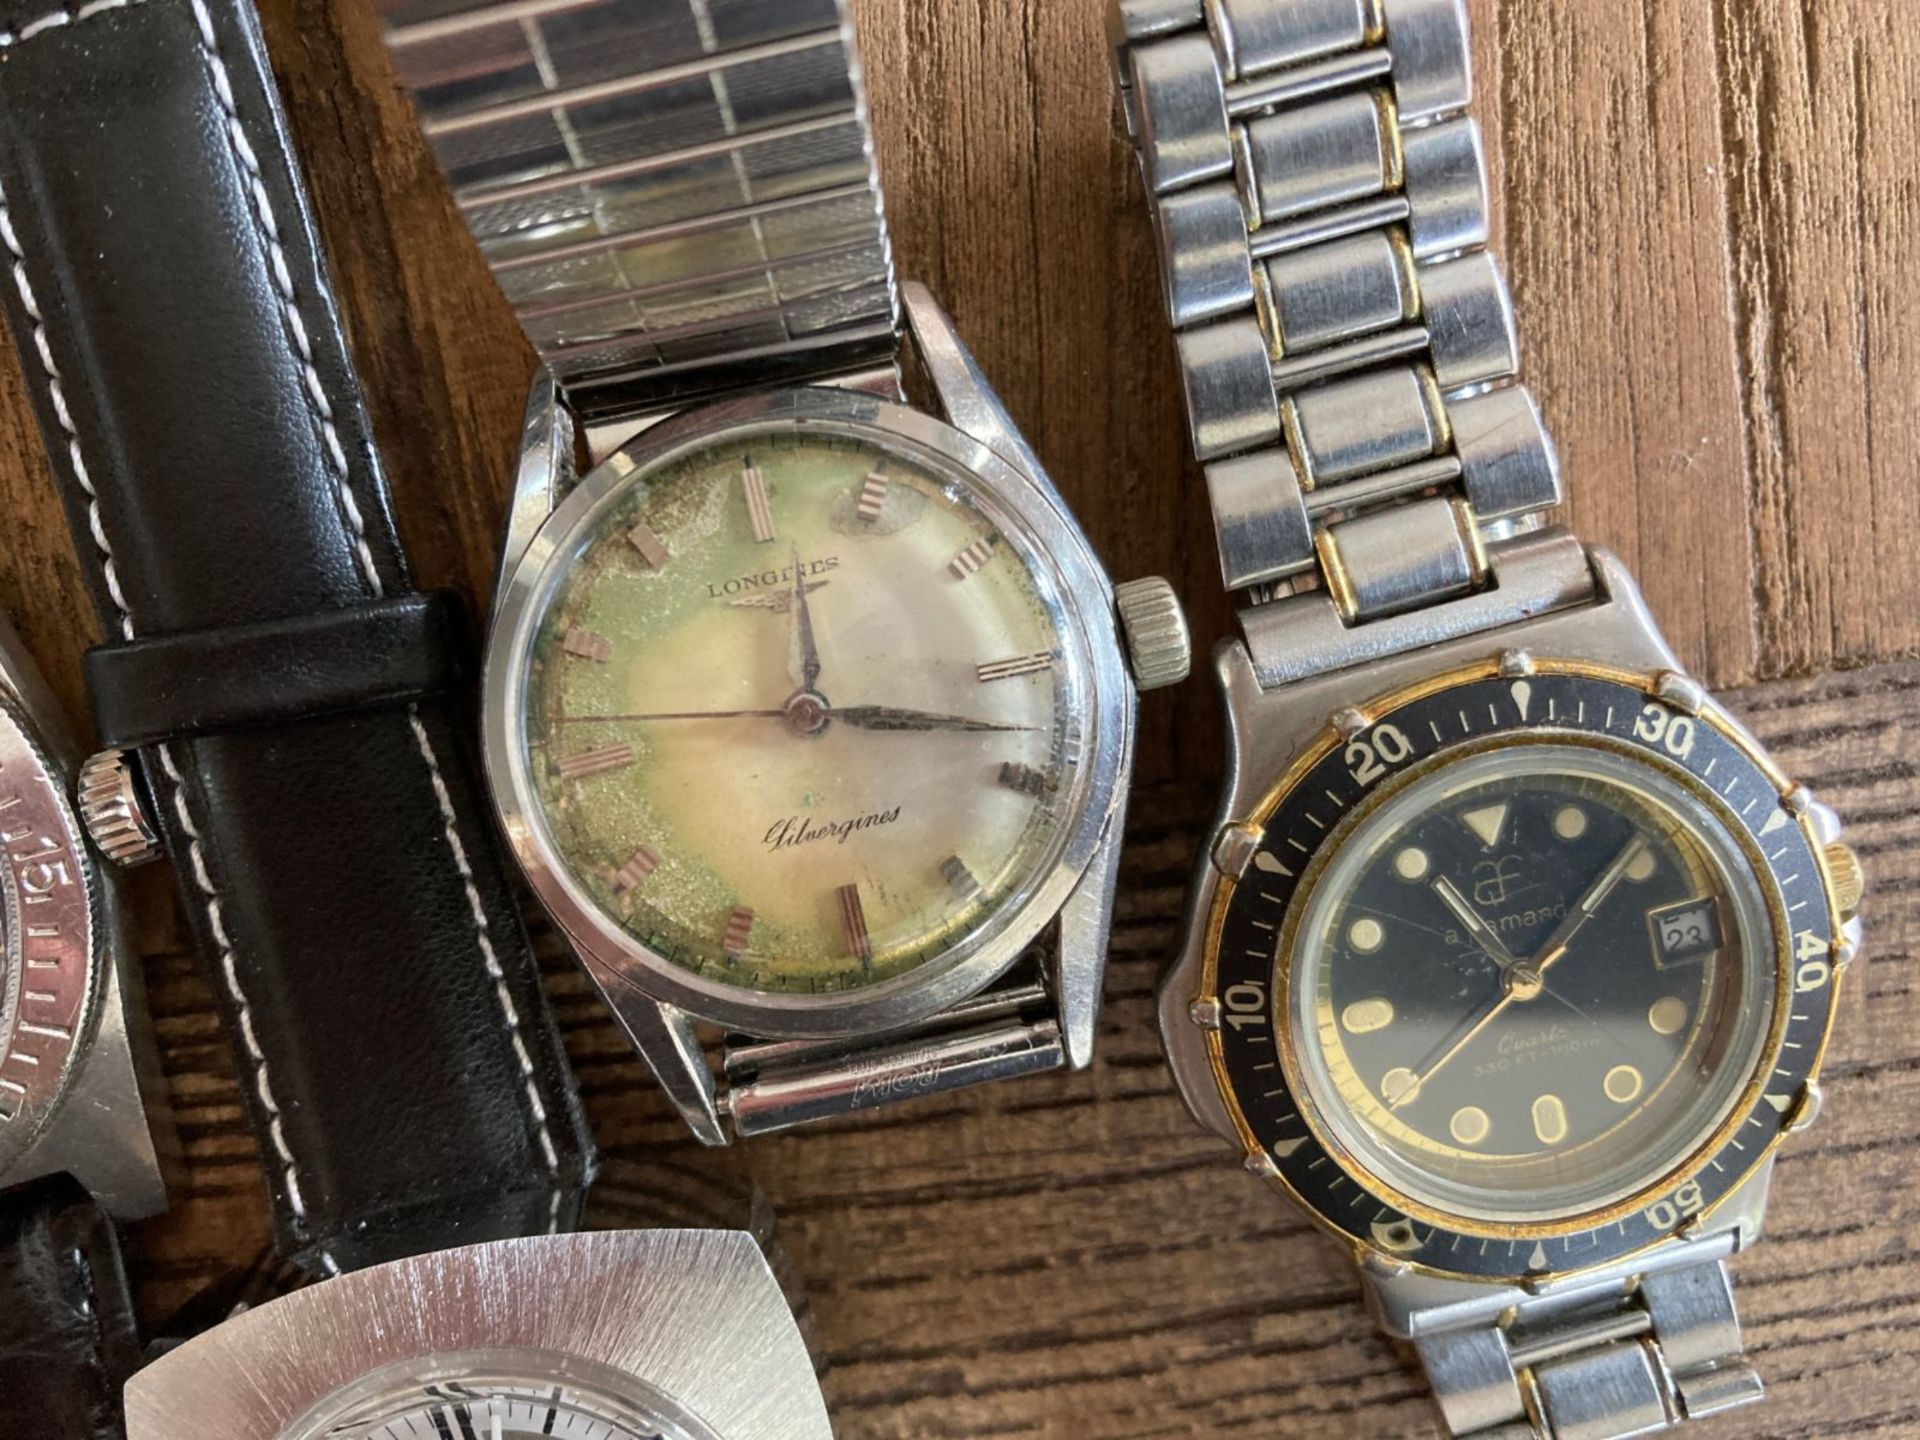 MIXED WATCHES INC LONGINES, ORION, VIALUX - Image 2 of 3